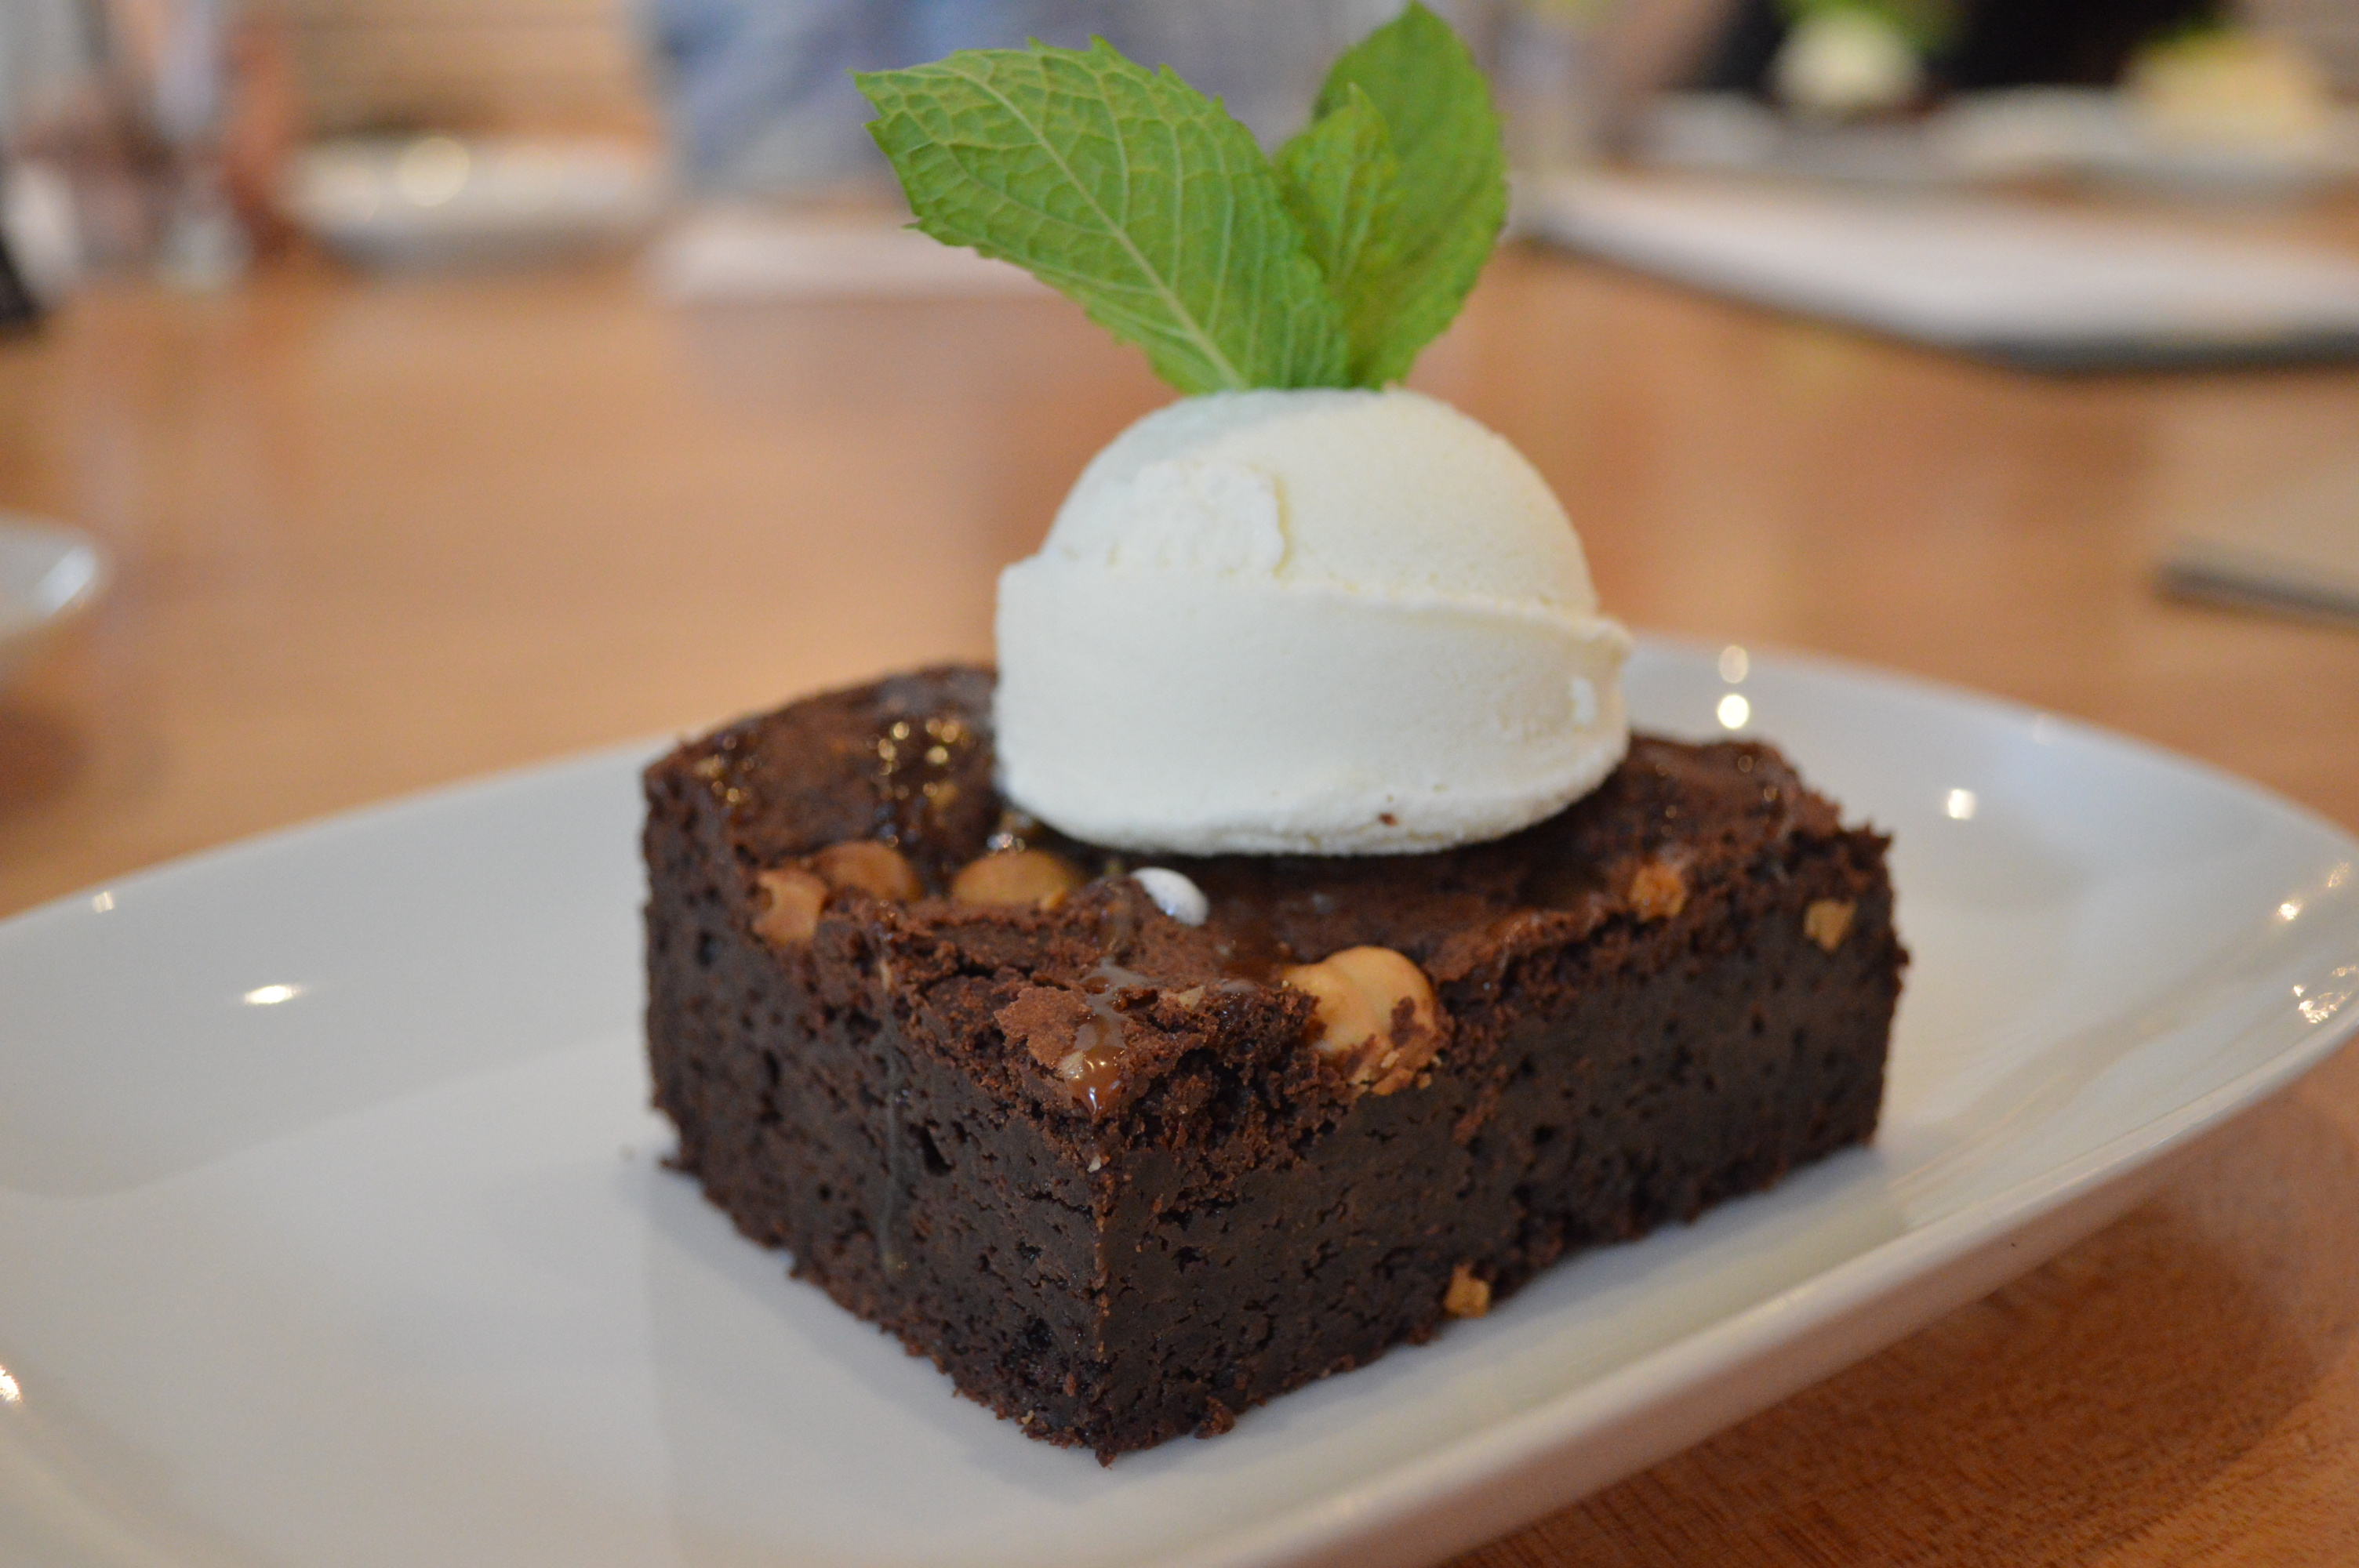 Chef kieran kearns raises the bar in gastropub dining at the charles no need to skip dessert if youre on a gluten free diet the charles bar is featuring a gluten free chocolate brownie 600 malvernweather Gallery